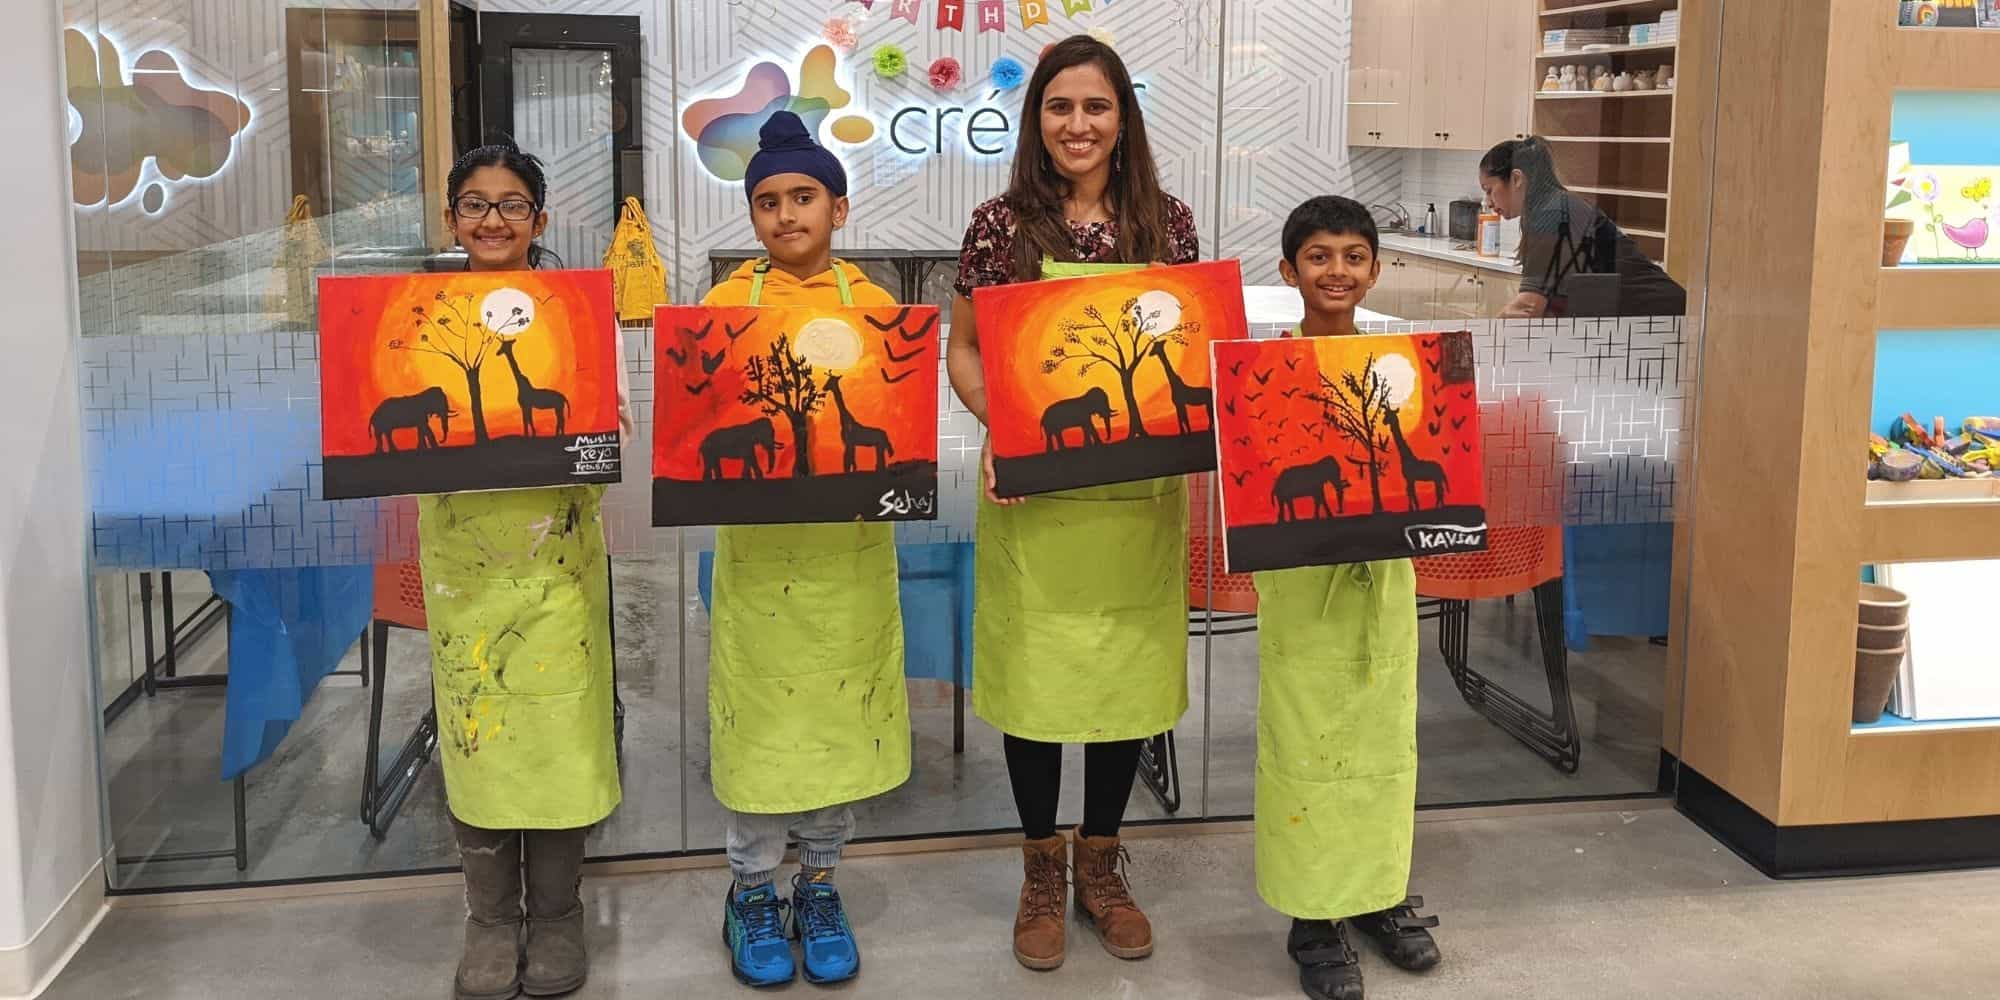 Painting Class Kids and Adults